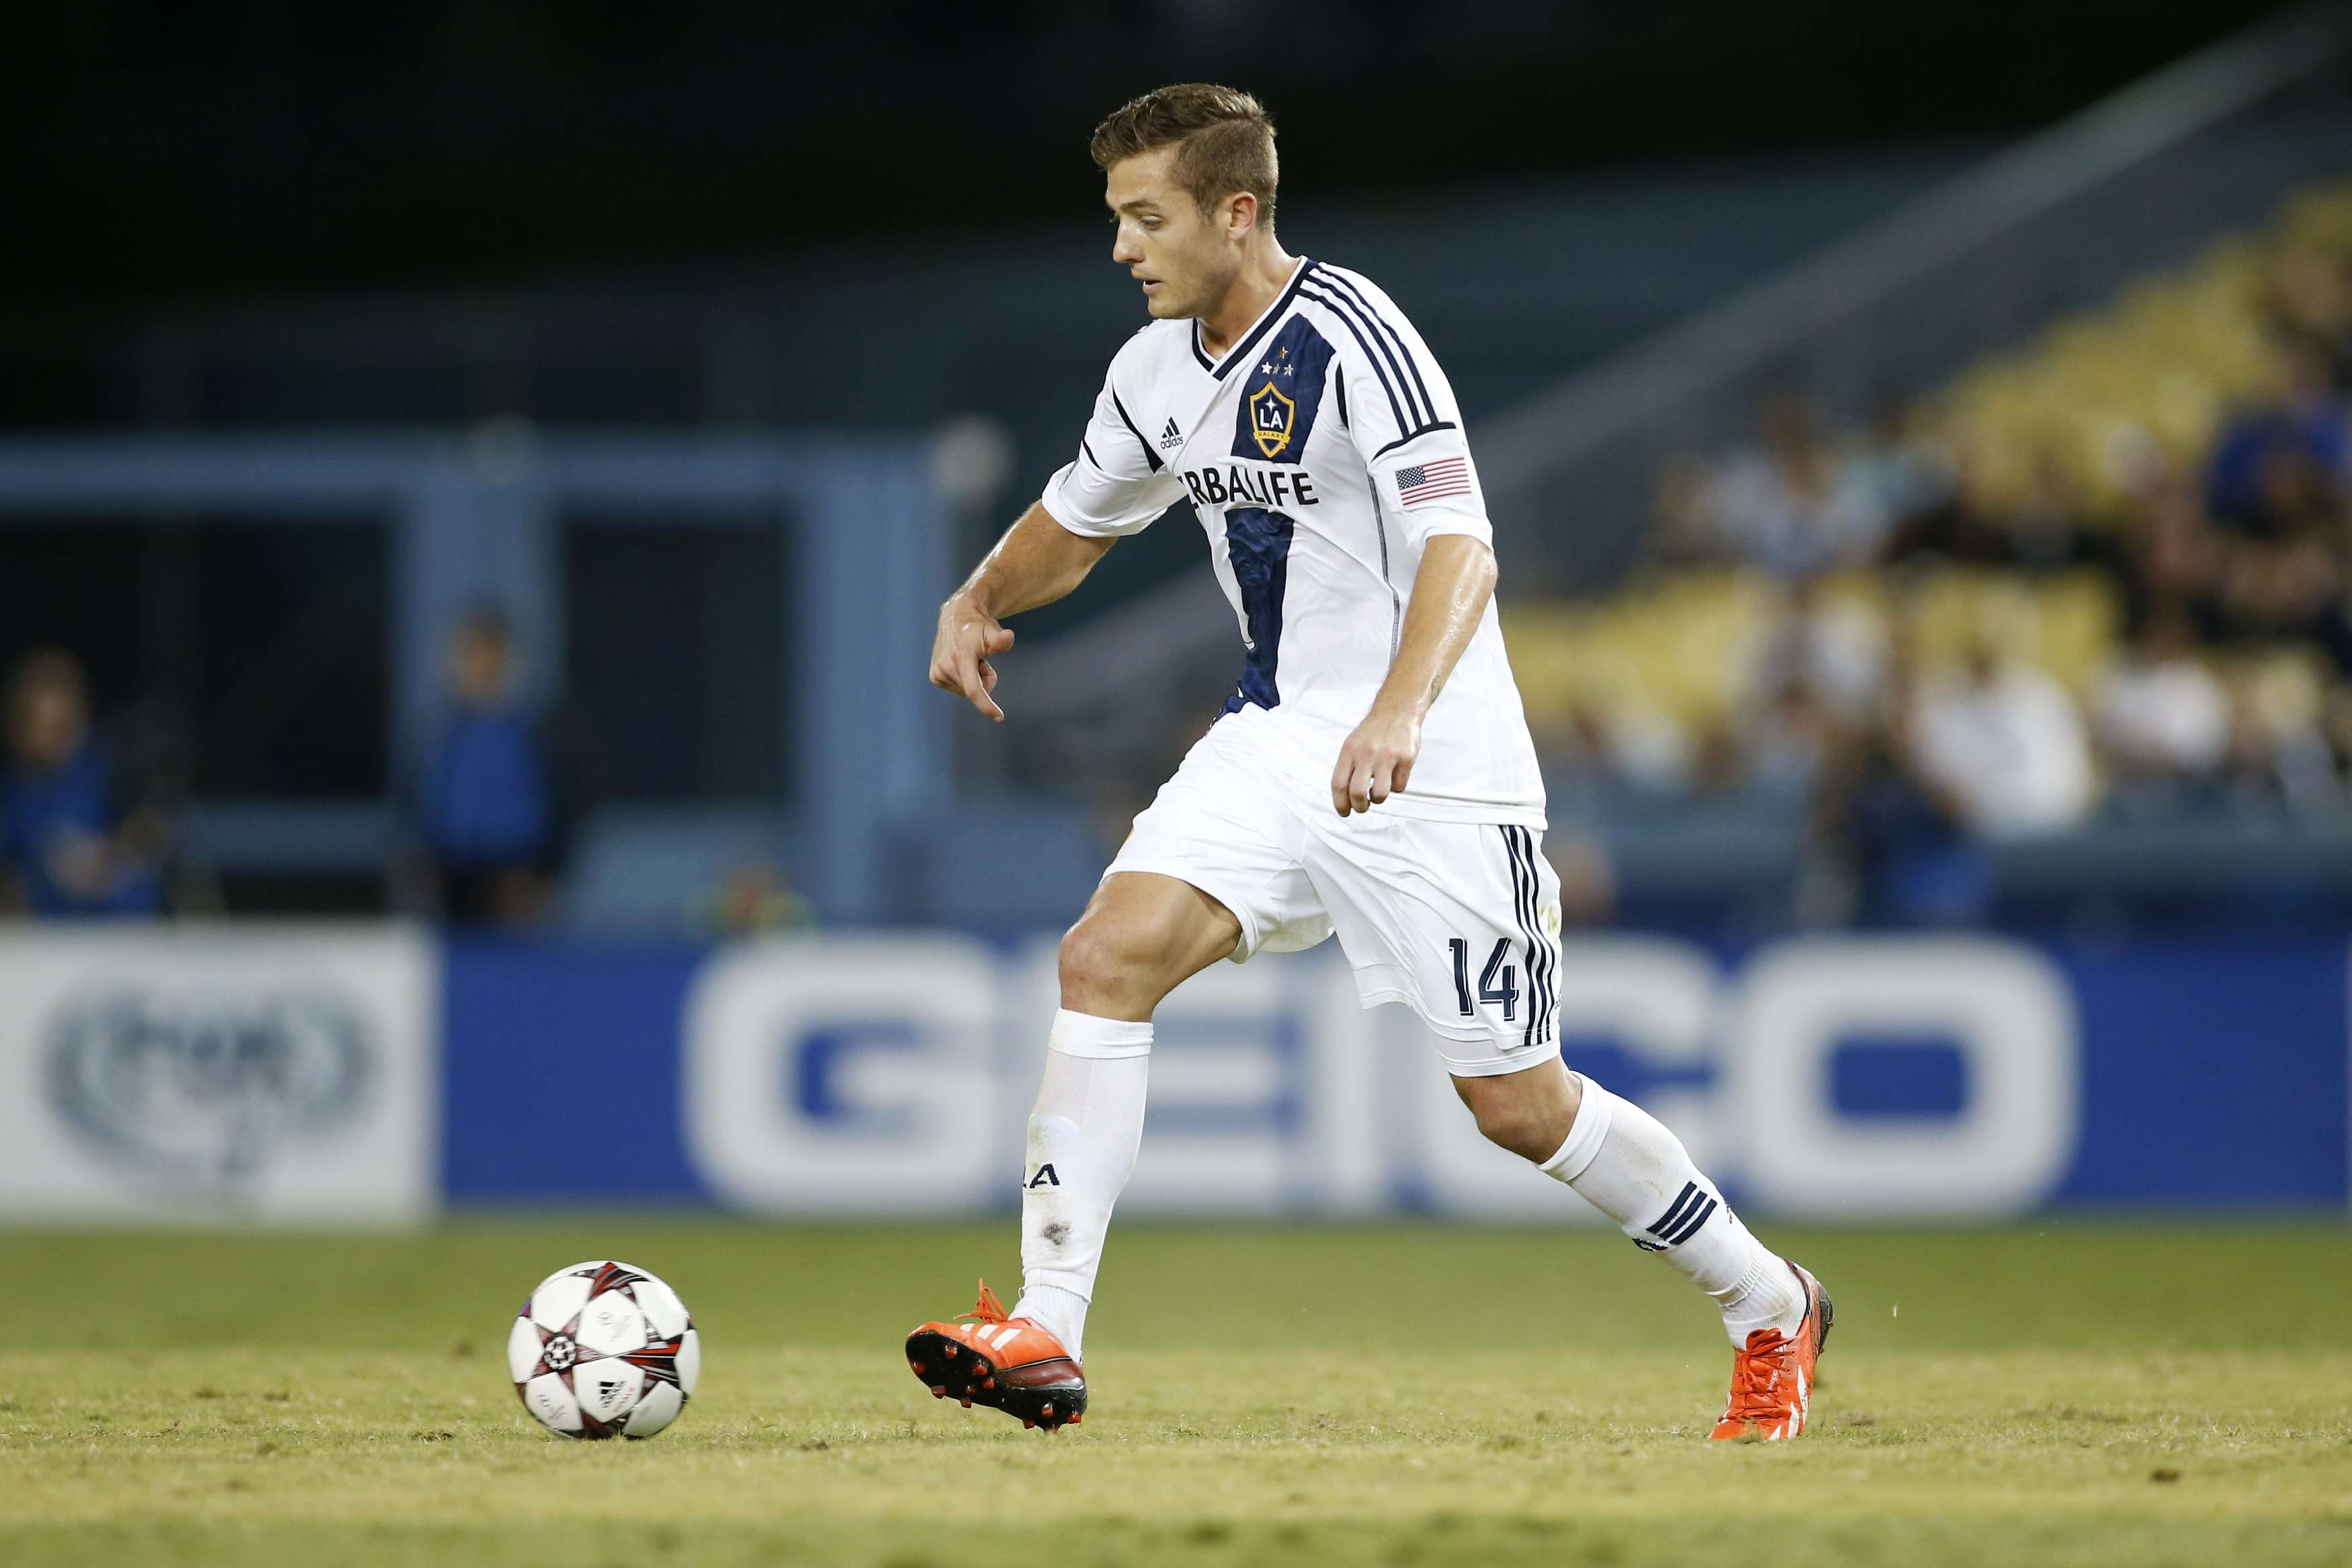 Robbie Rogers of L.A. Galaxy controls the ball against Juventus during the second half of their Guinness International Champions Cup soccer match at Dodger Stadium in Los Angeles, August 3, 2013. REUTERS/Danny Moloshok (UNITED STATES - Tags: SPORT SOCCER) Foto: DANNY MOLOSHOK/REUTERS